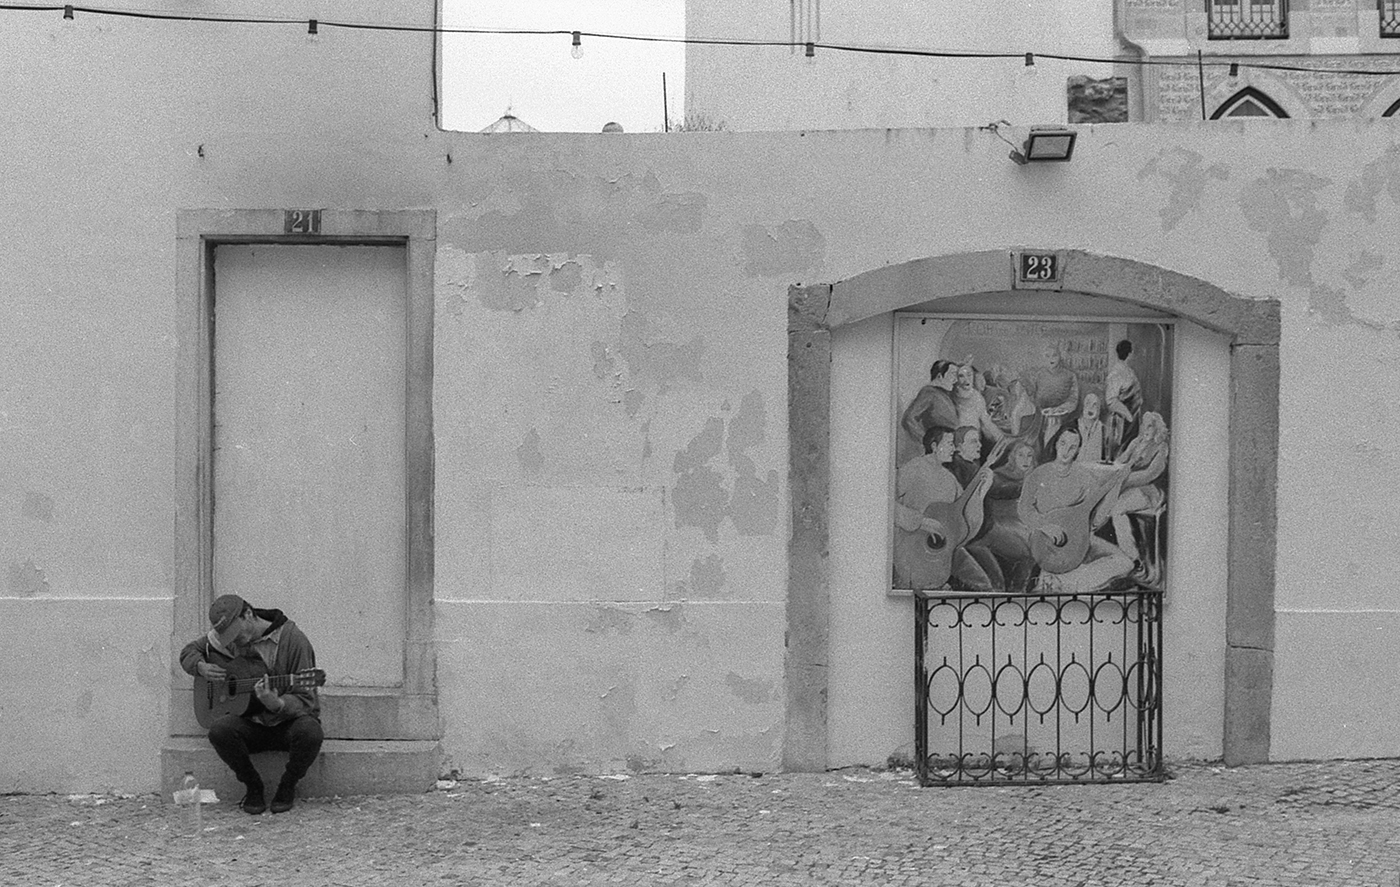 fotim-na-film-bw-ilford-pan-400